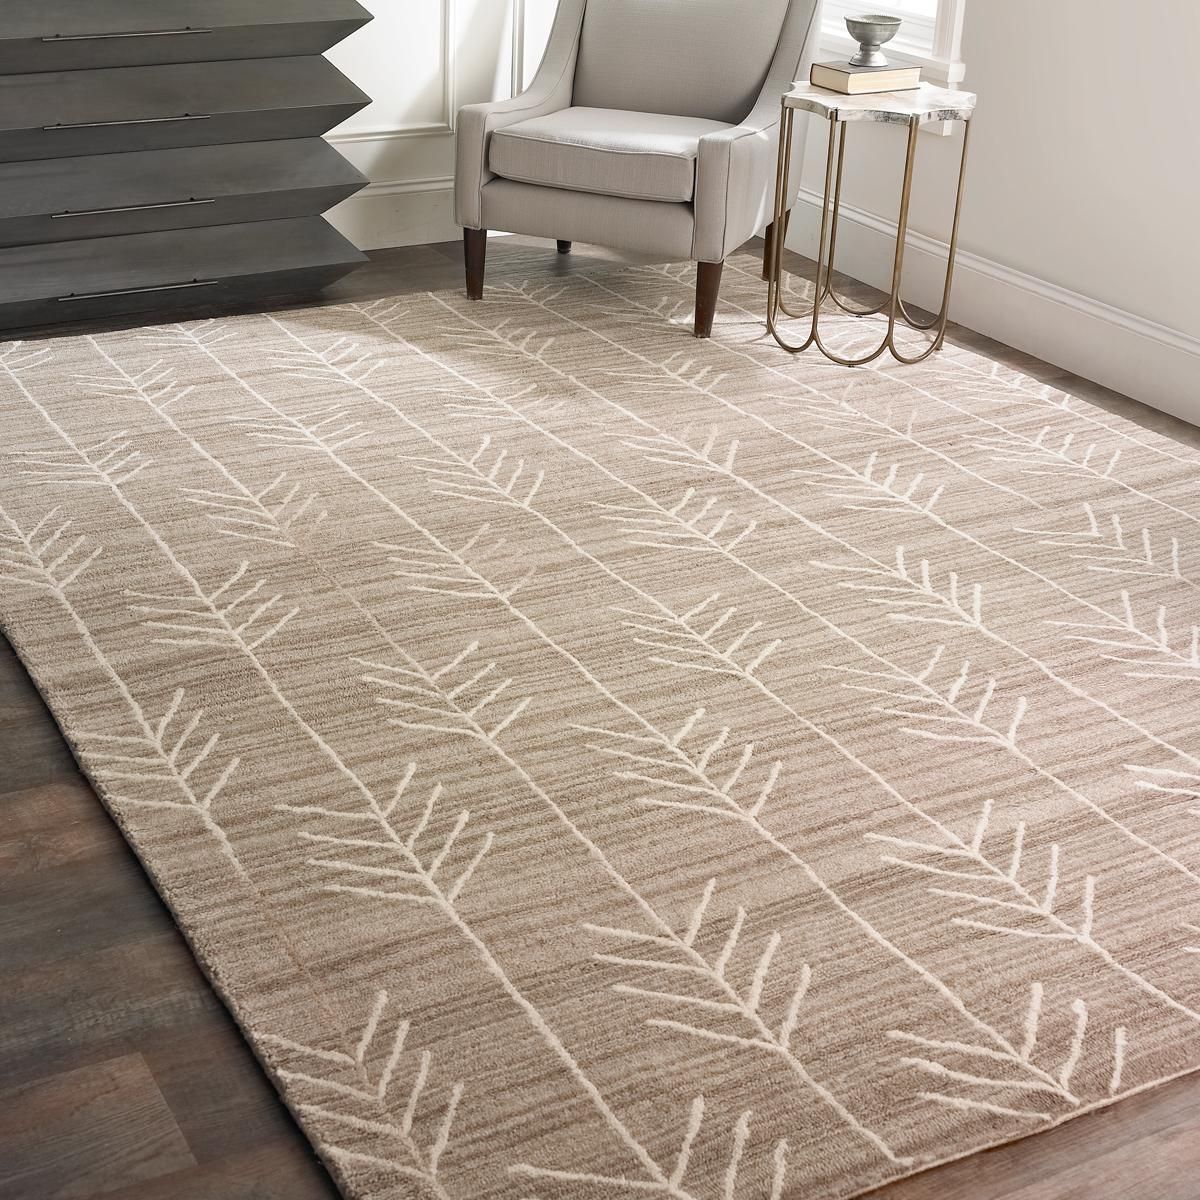 Rustic Farmhouse Area Rugs Best 25 43 Rustic Rugs Ideas On Pinterest Rustic Area Rugs